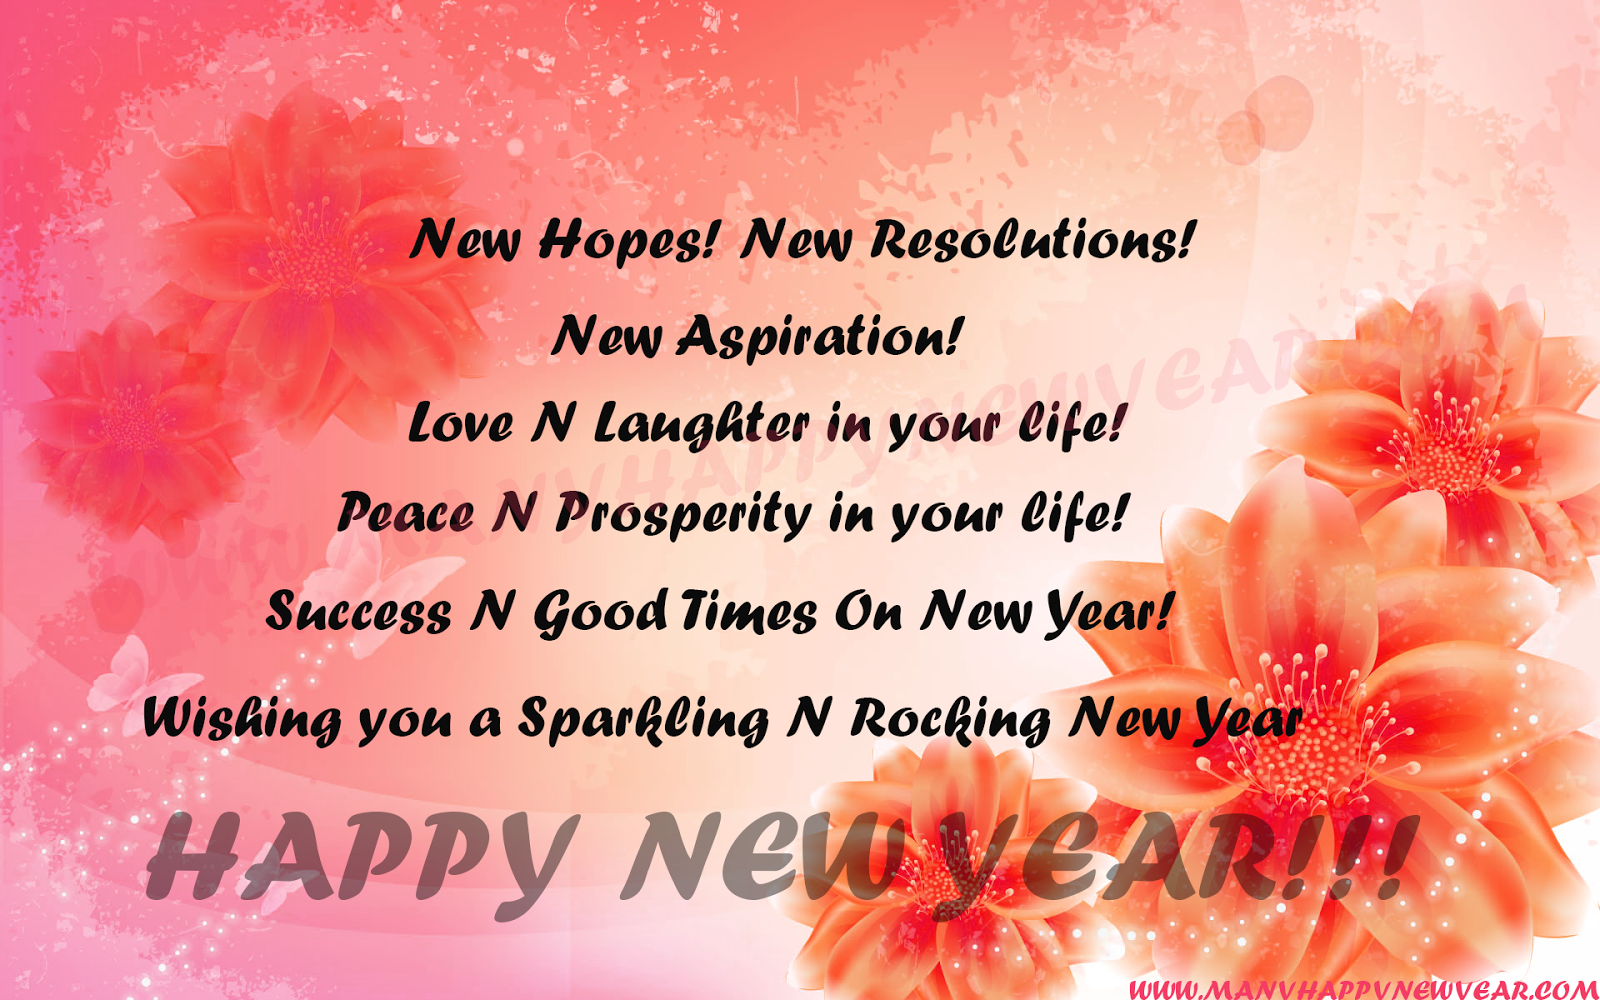 2018 new year best messages greetings wishes quotes for teacher new year 2018 wishes greeting cards messages quotes for facebook kristyandbryce Images